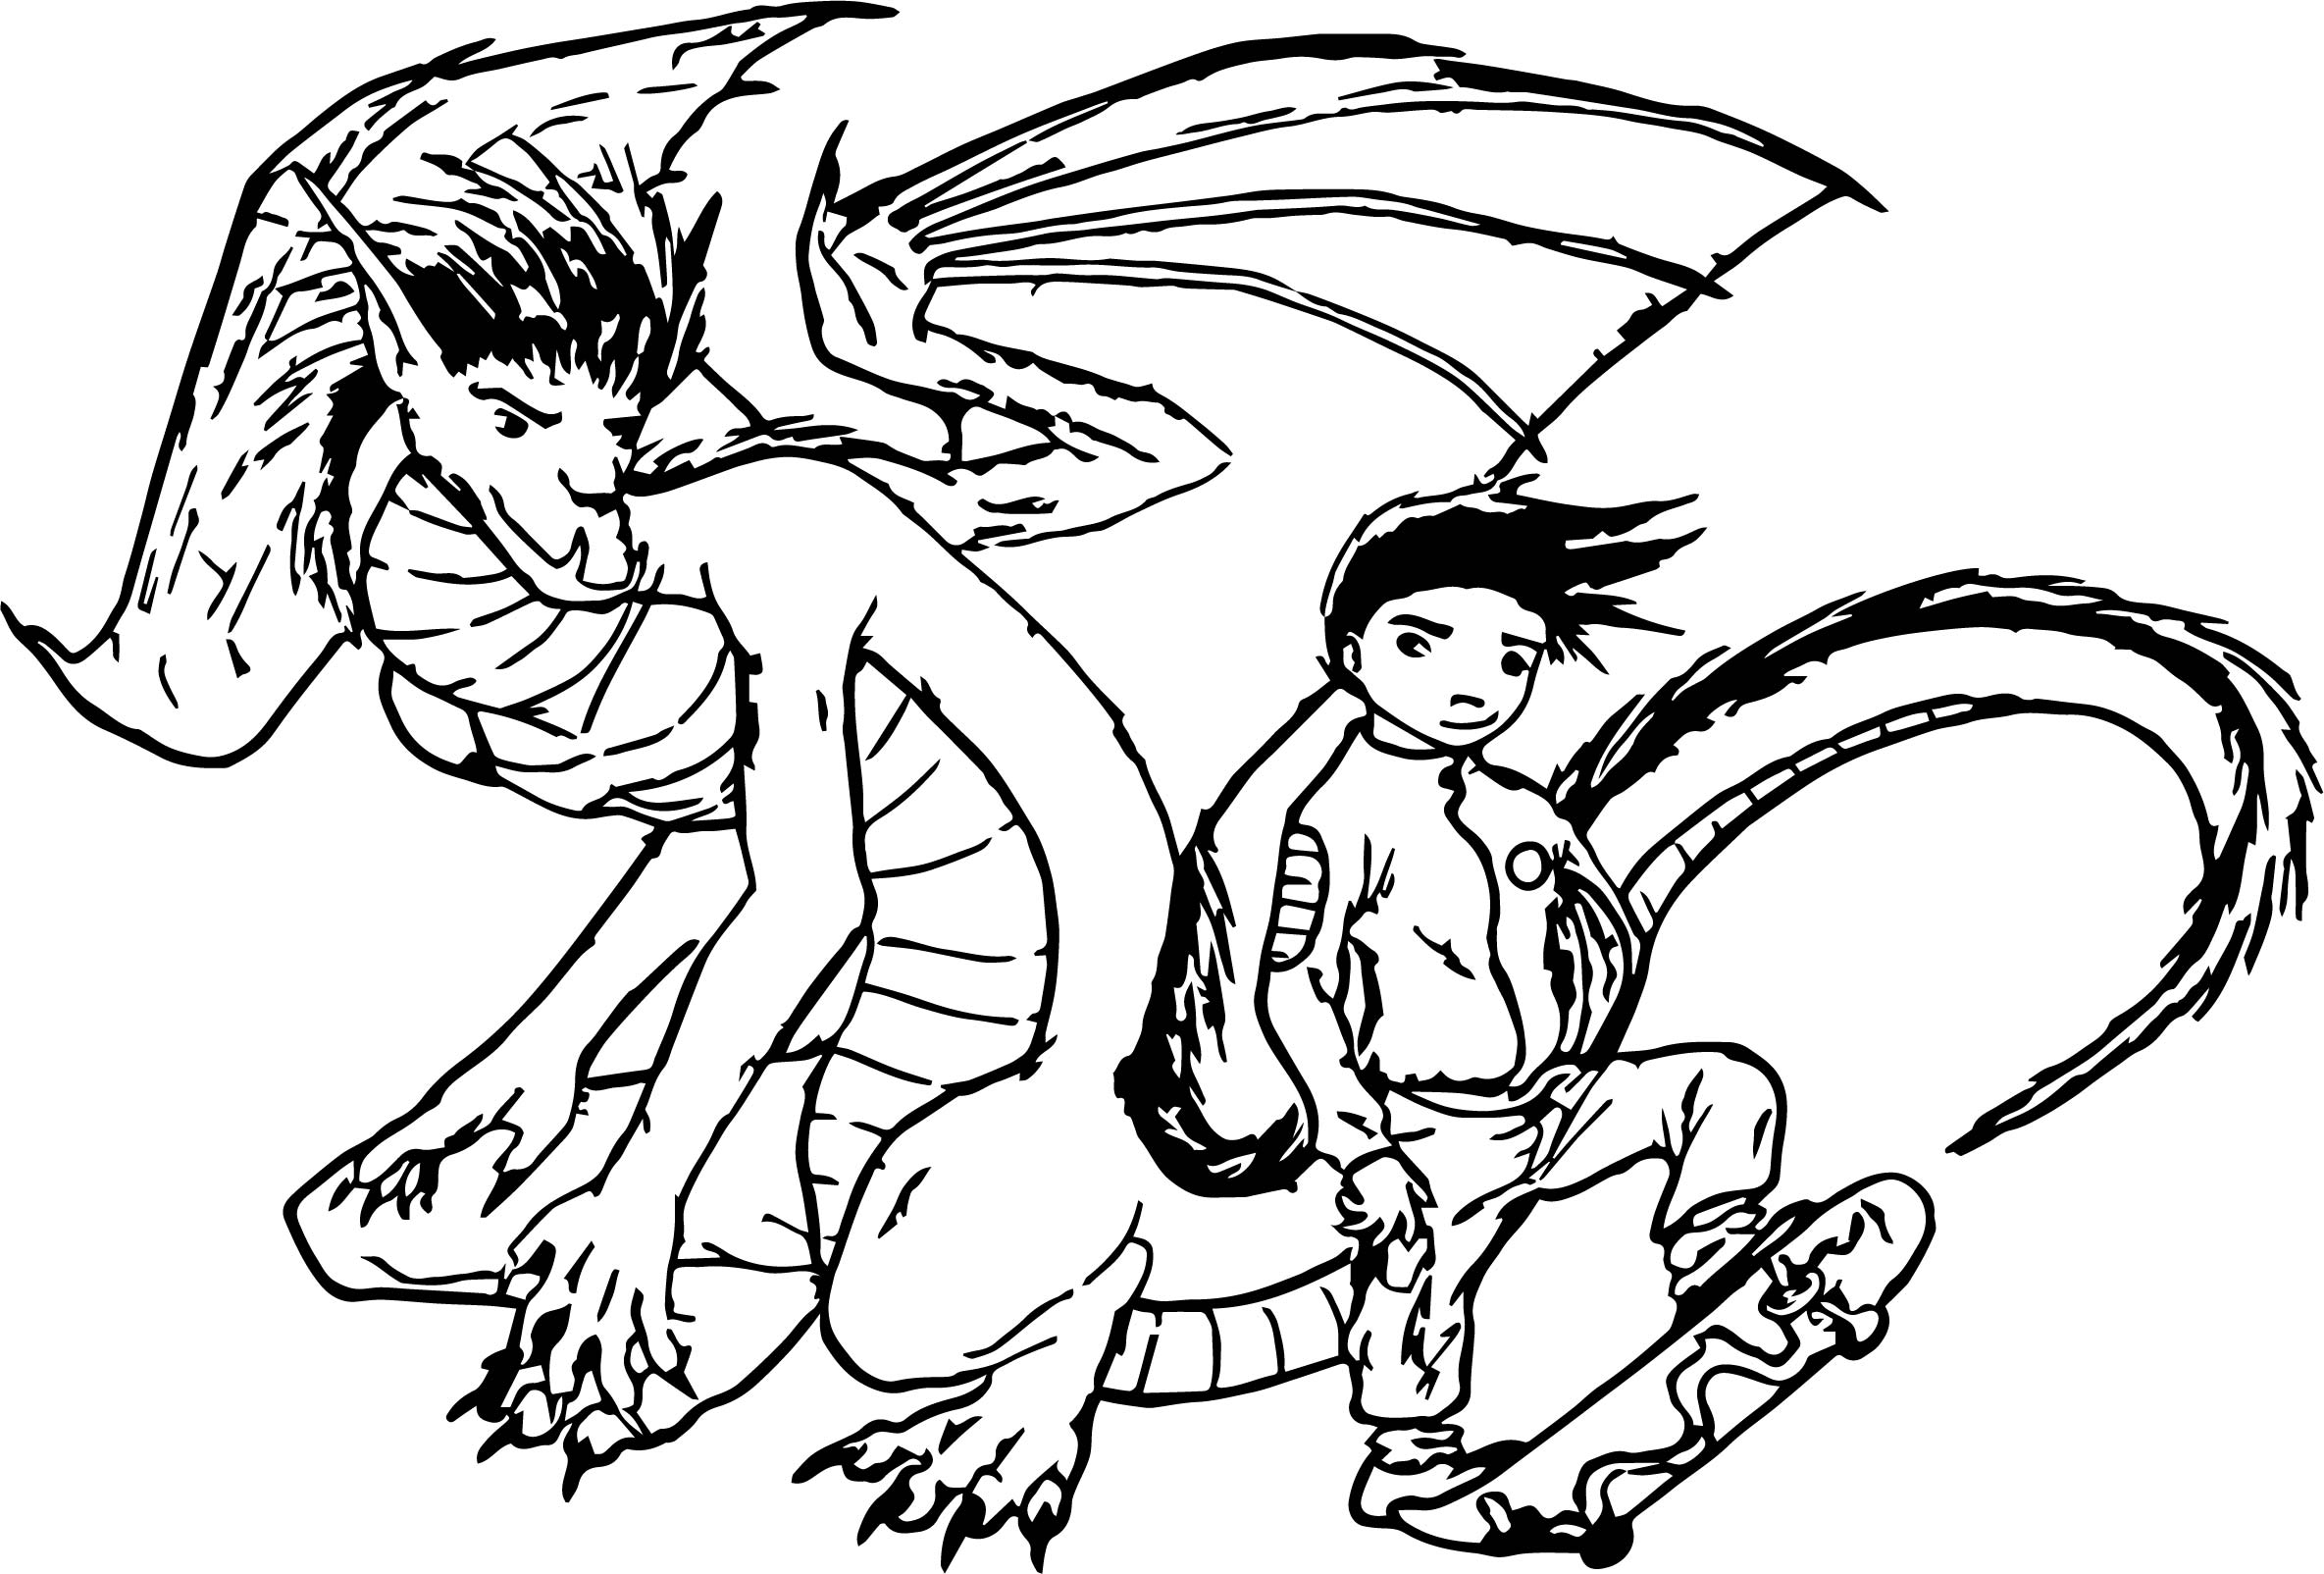 americon dragon coloring pages - photo#19